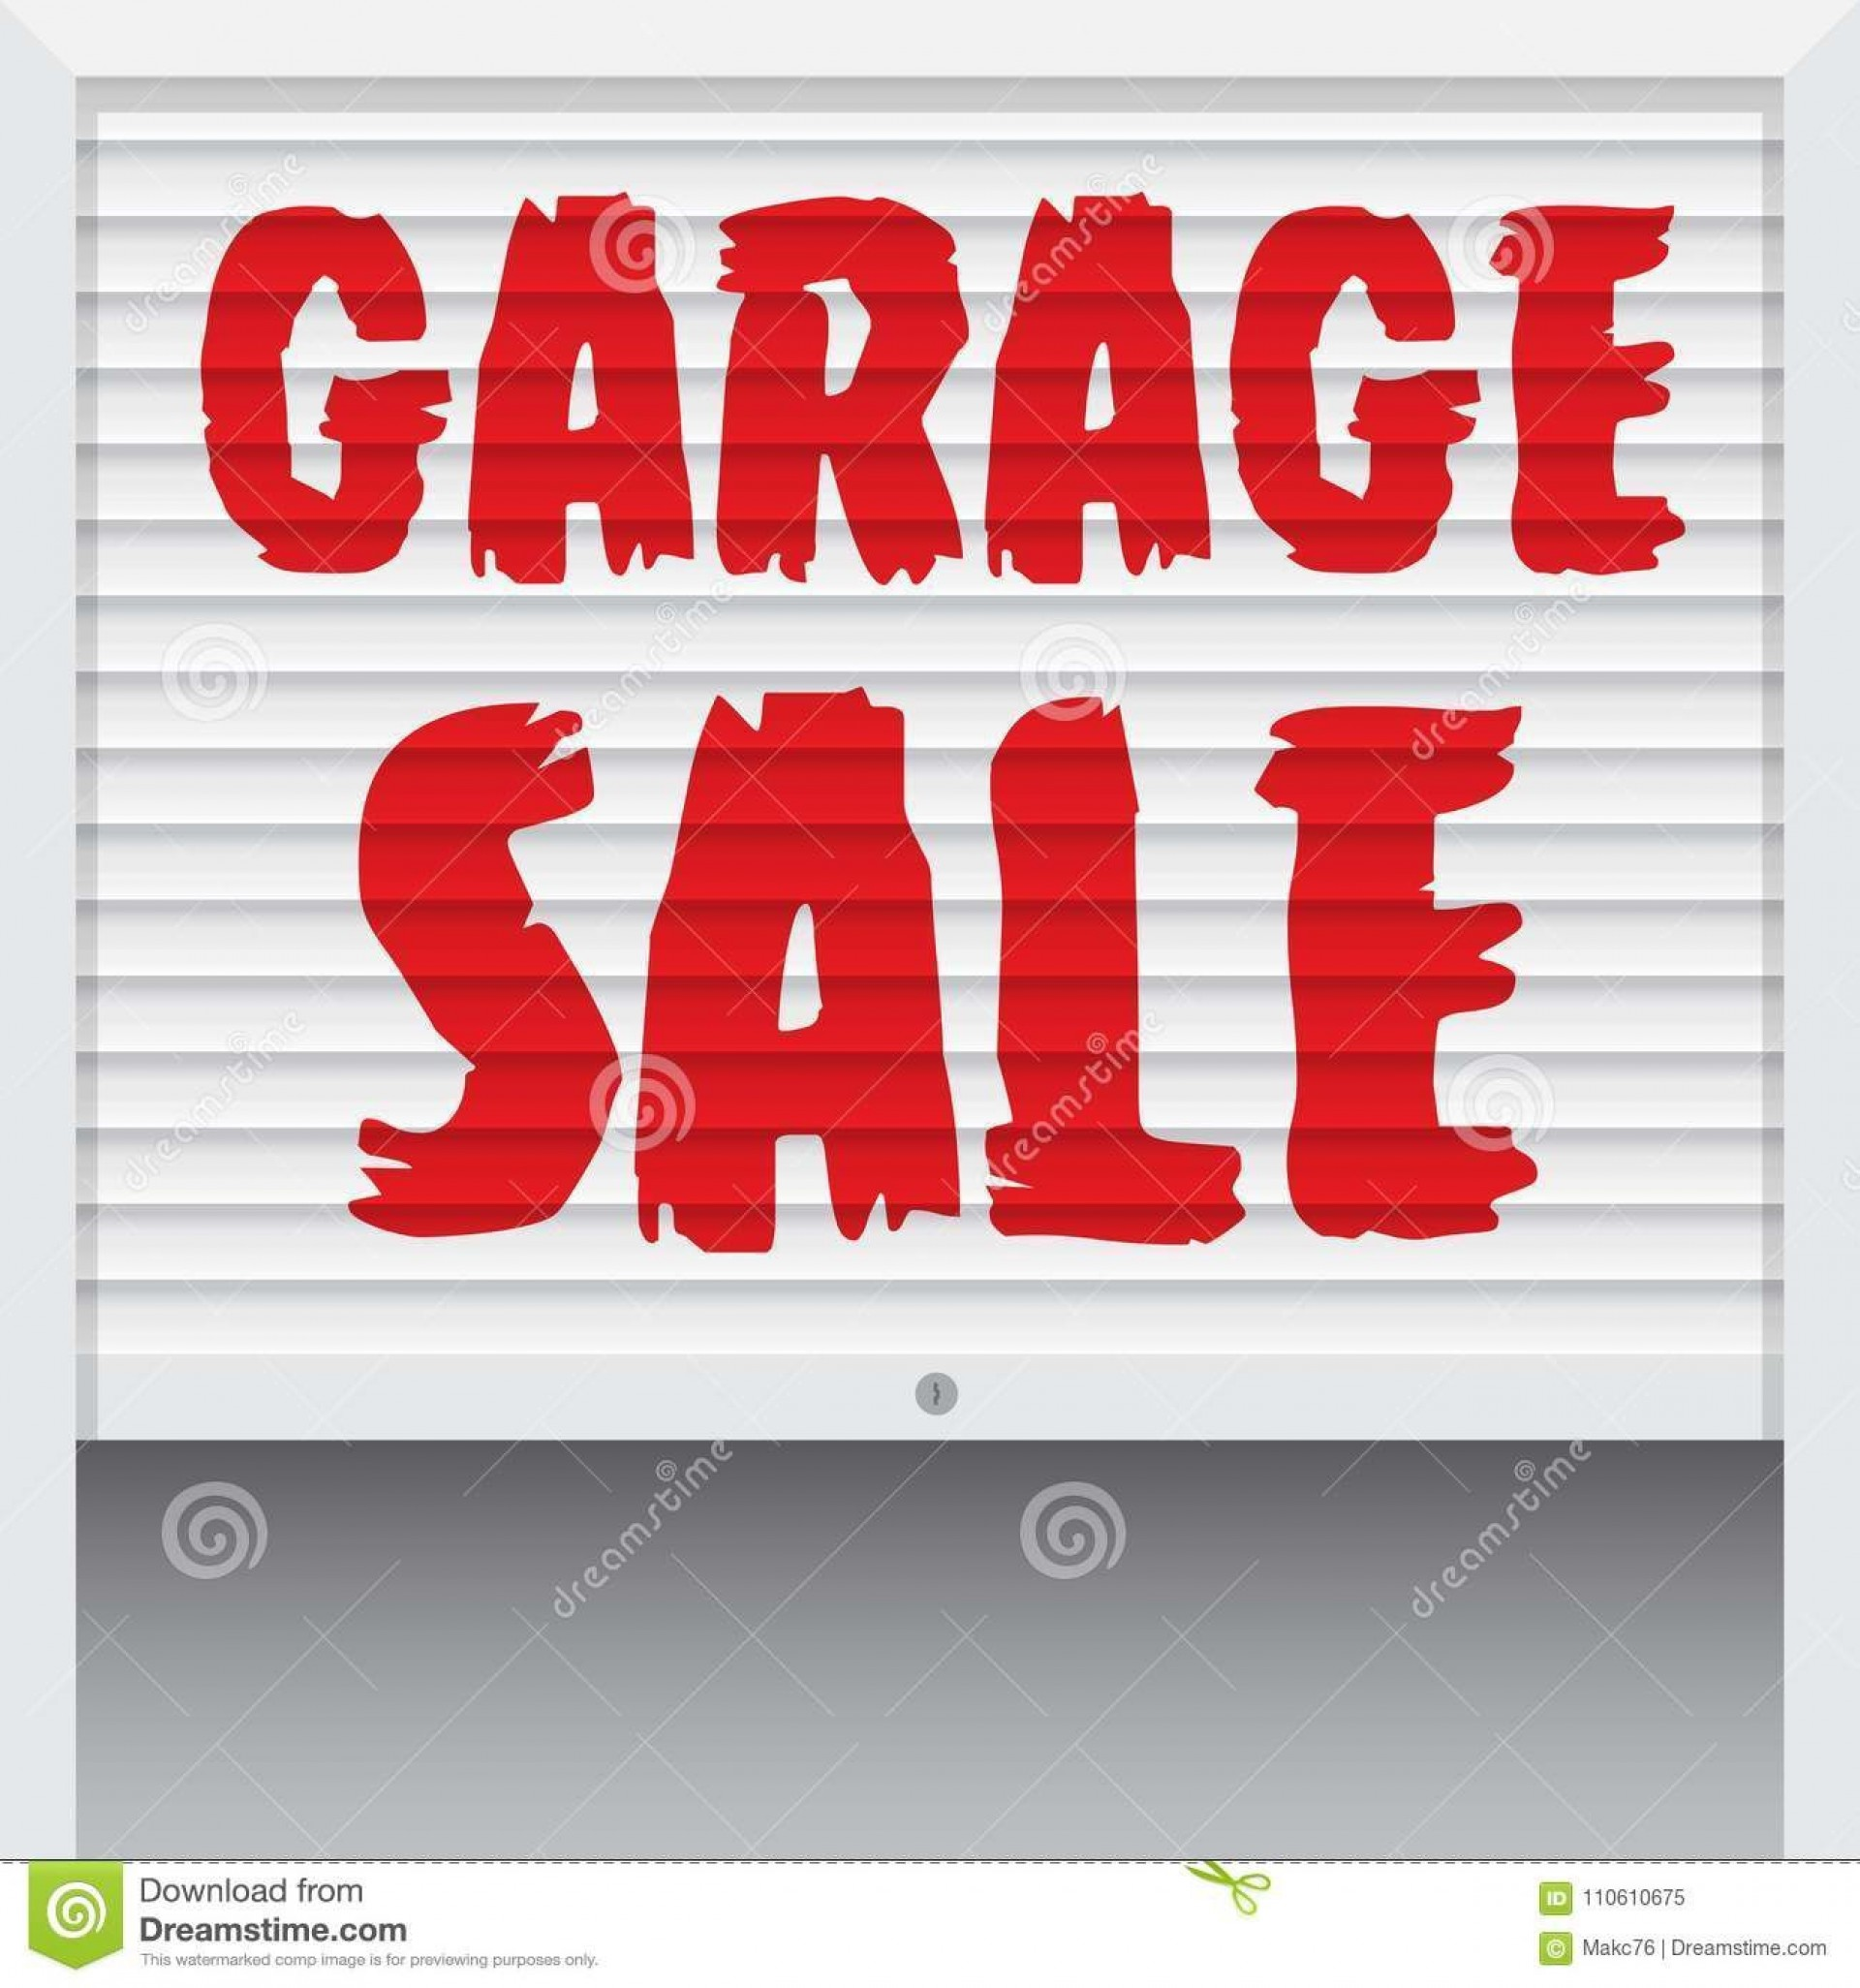 006 Breathtaking Garage Sale Sign Template Photo  Flyer Microsoft Word Community Yard Free Rummage1920